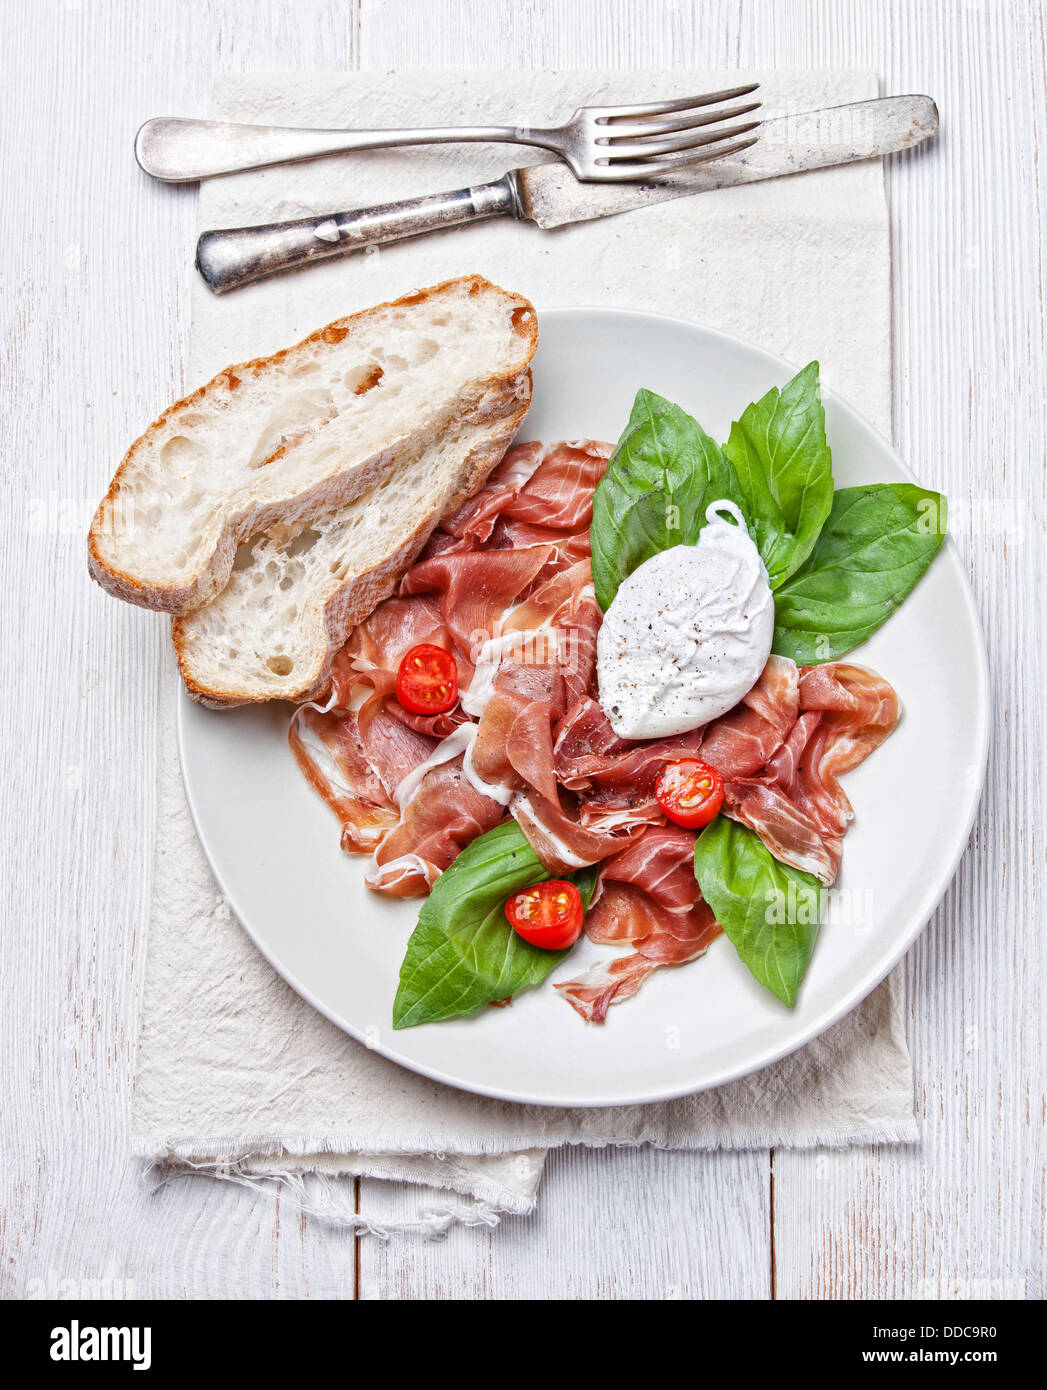 Salade de jambon avec œuf poché Photo Stock